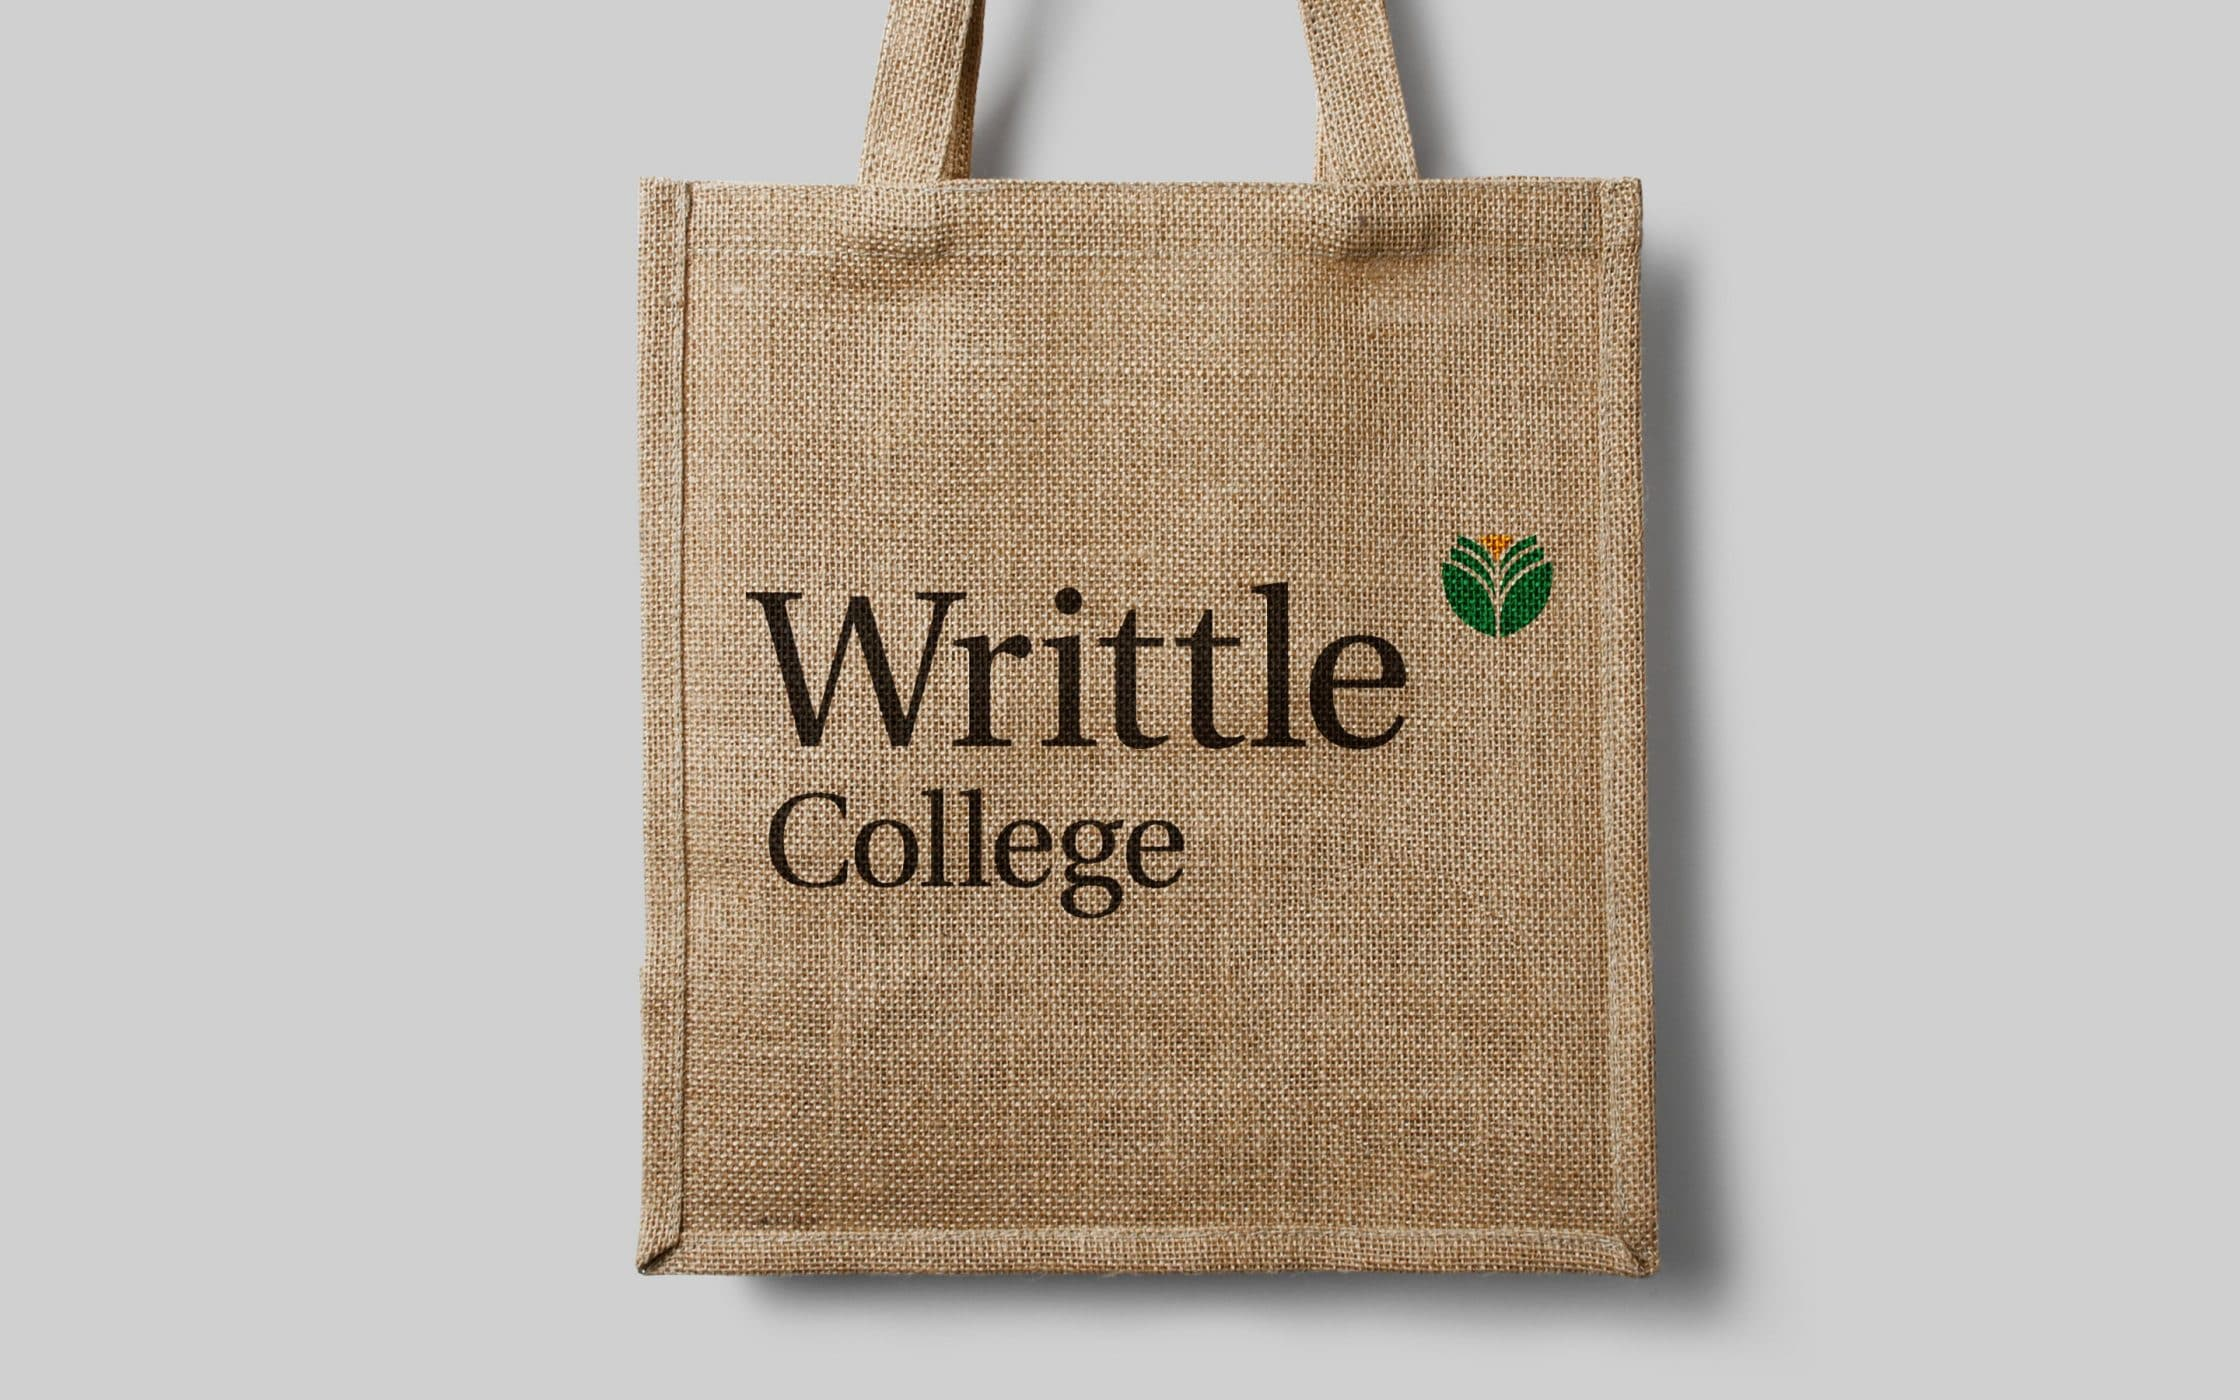 Woven material bag with Writtle College typeface and logo on.